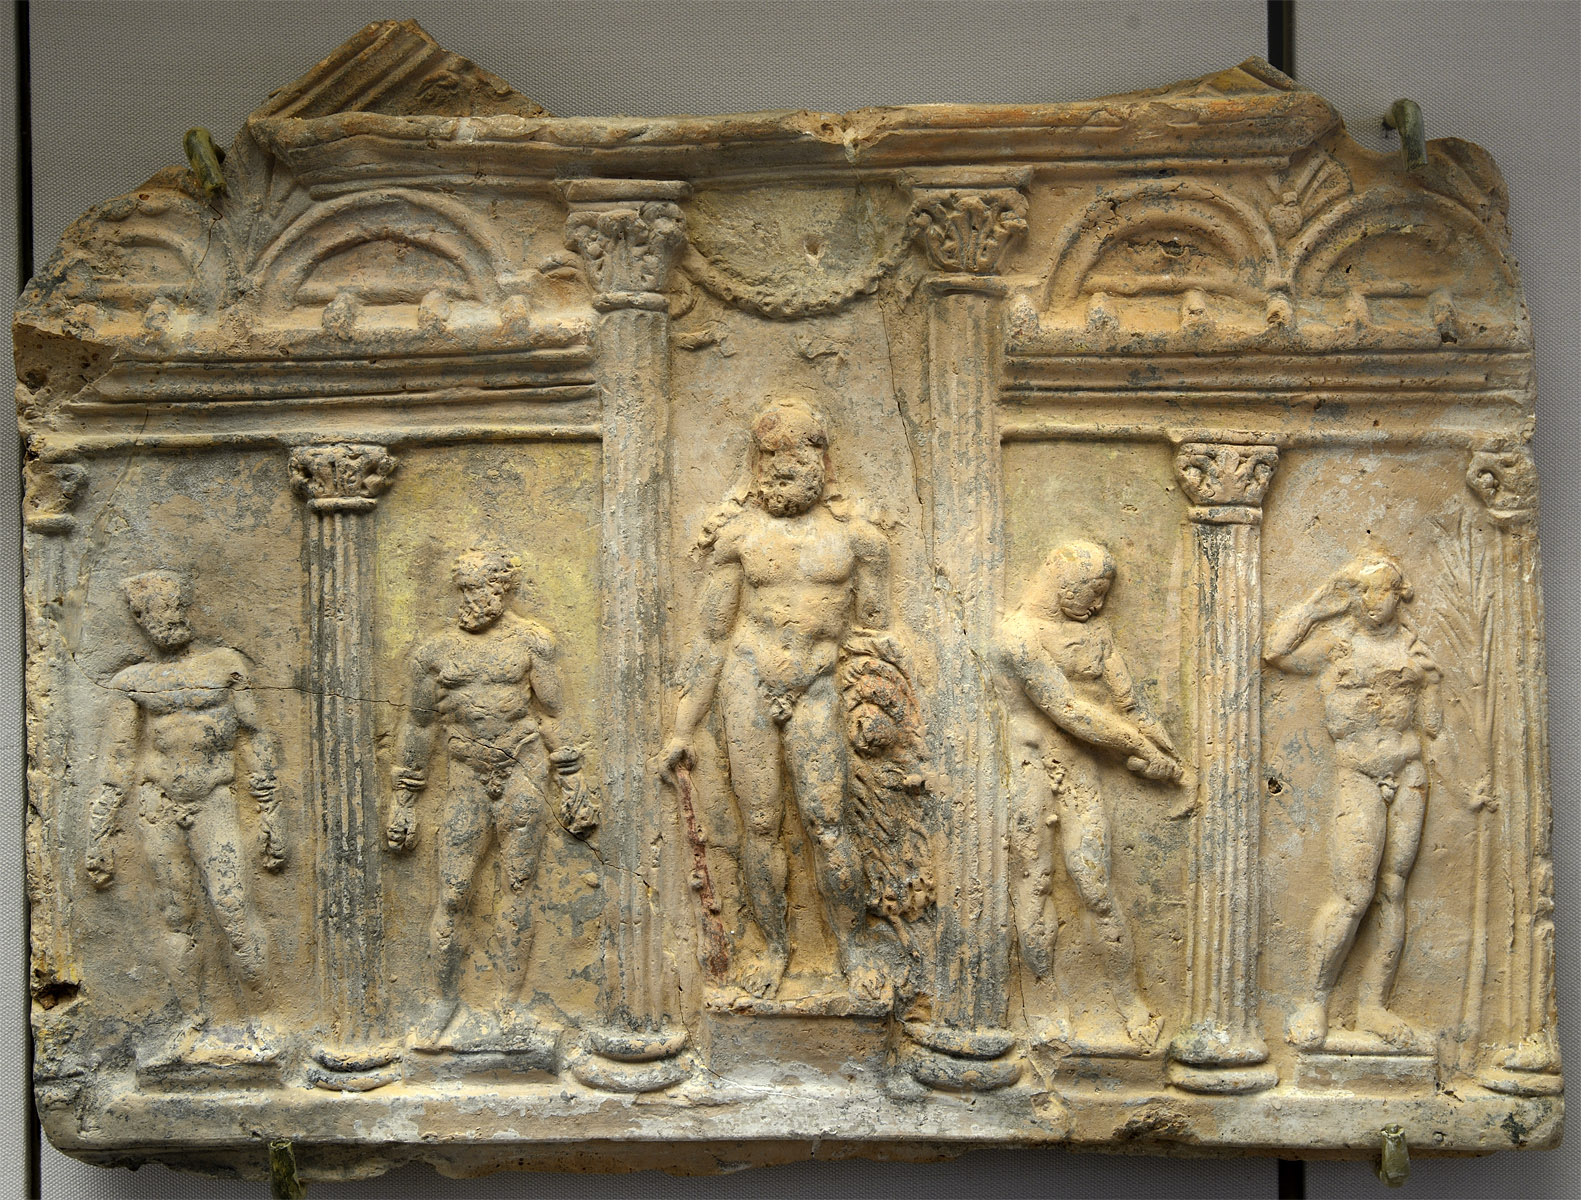 Campana plaque showing palaestra. Terracotta, traces of paint. 1st cent CE. Inv. No. AT 3700. Moscow, the Pushkin Museum of Fine Arts